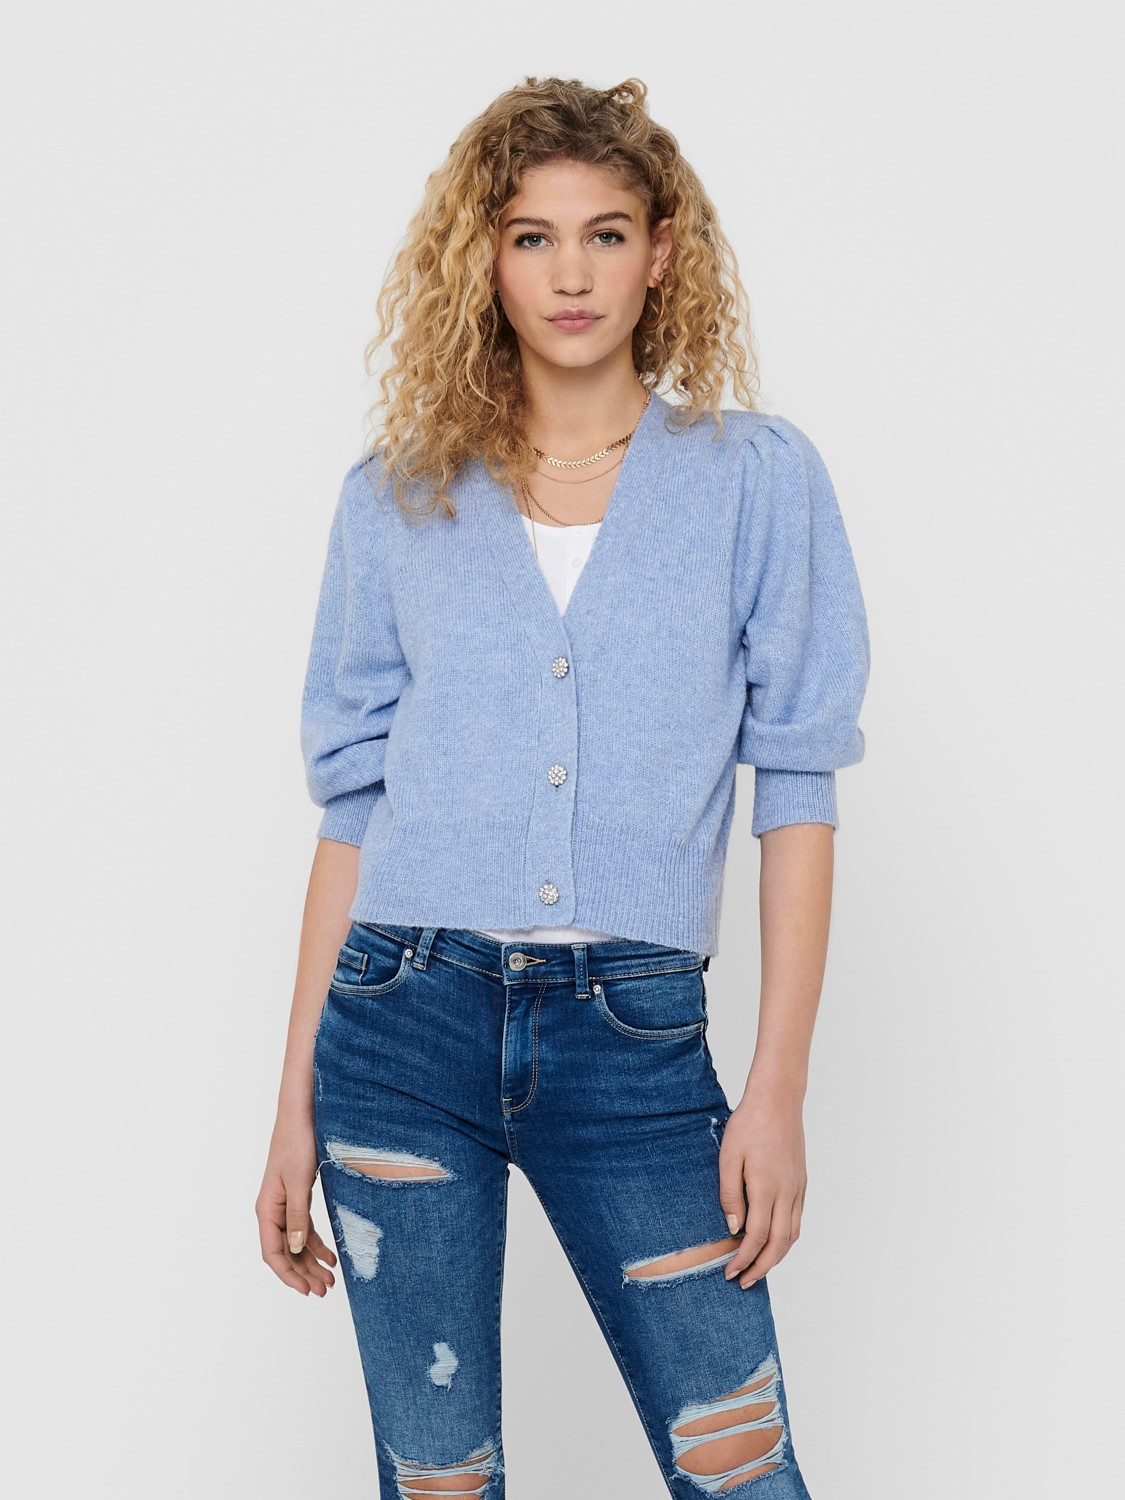 gallery-2125-for-15225369-blue